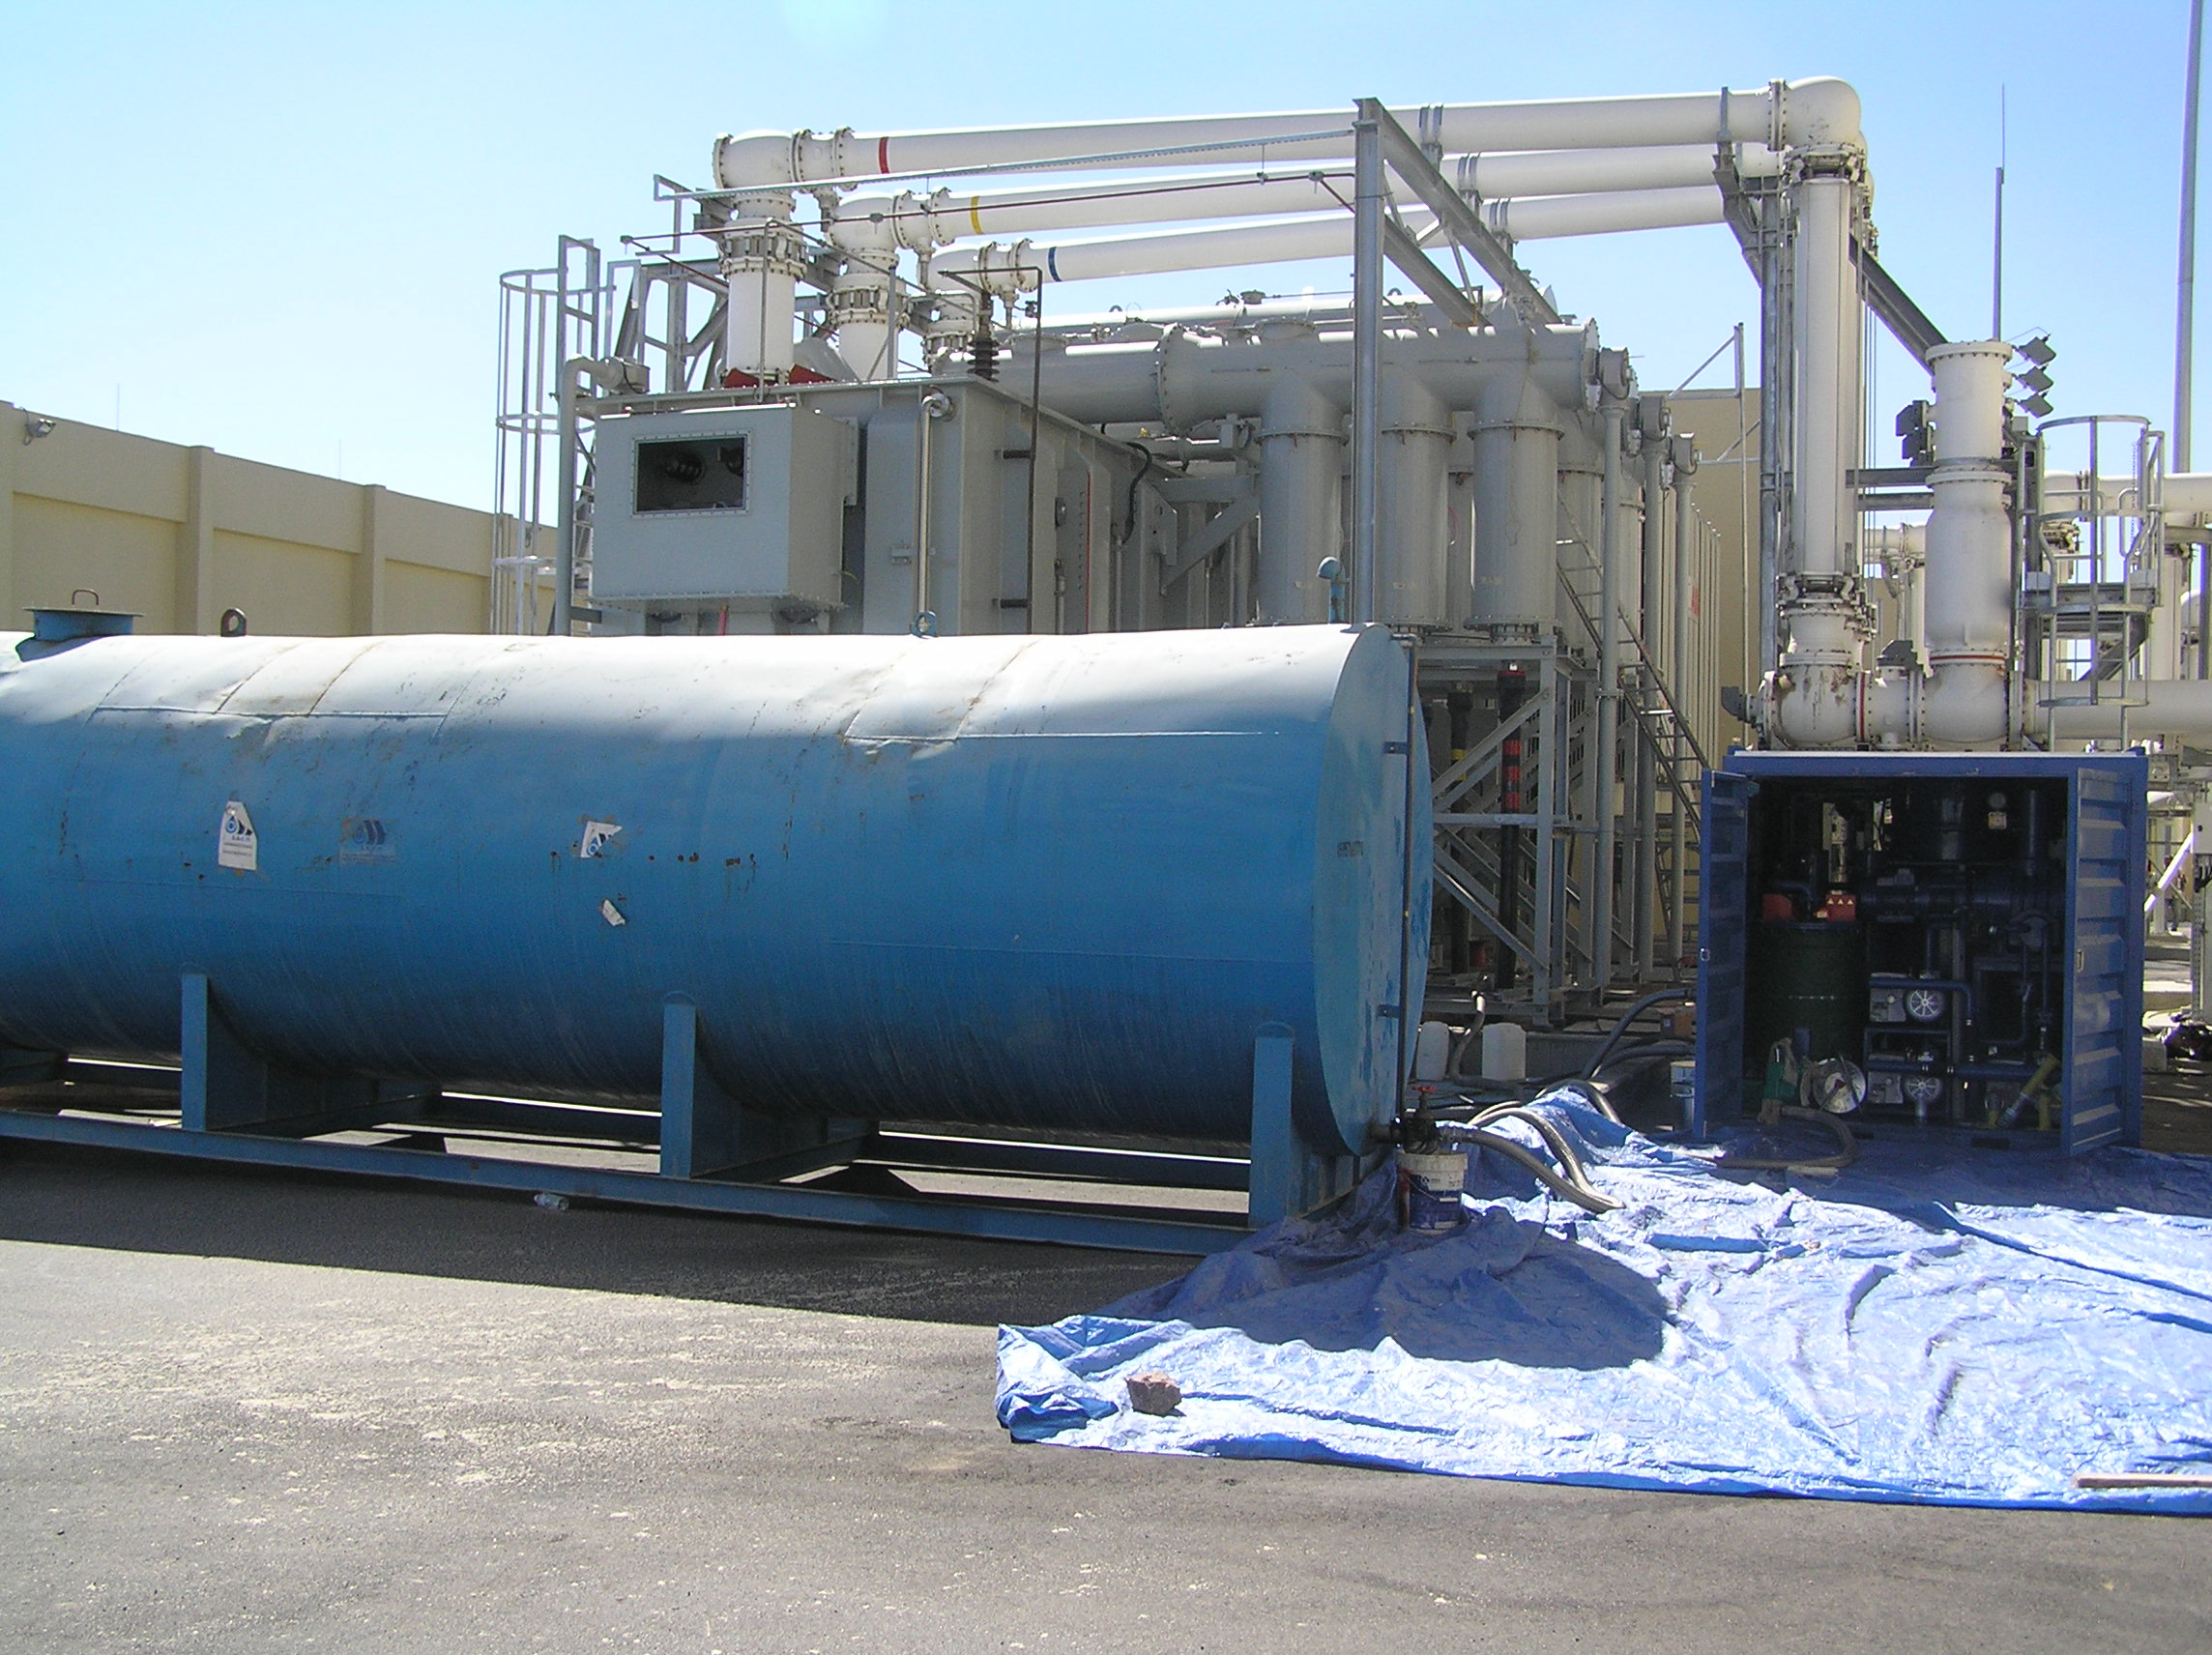 Globecore insulating oil clarification systems with Fullers Earth